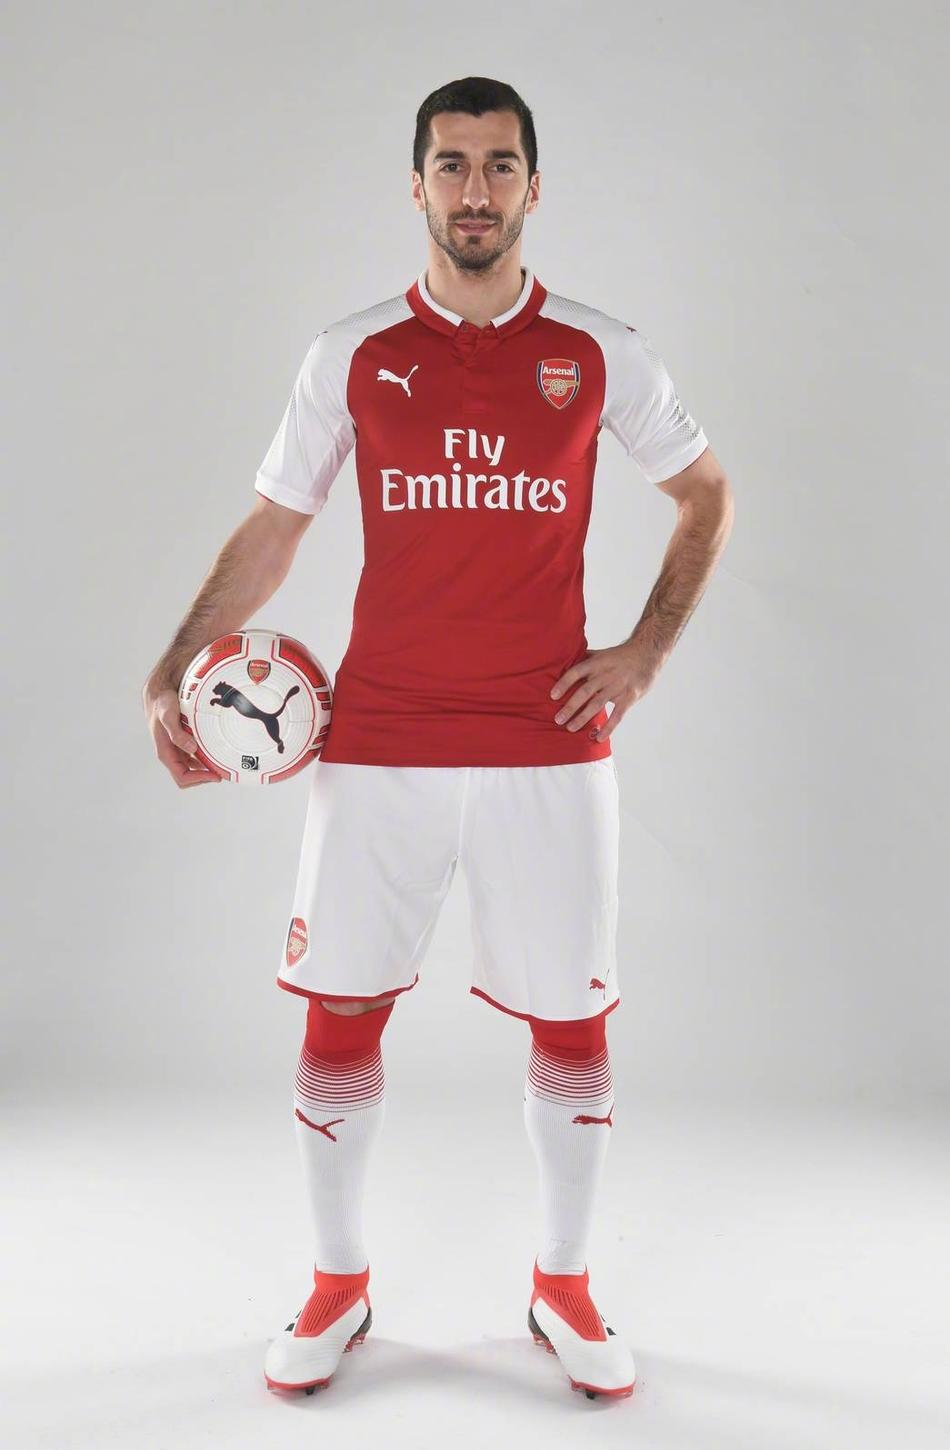 arsenal shop multimidia